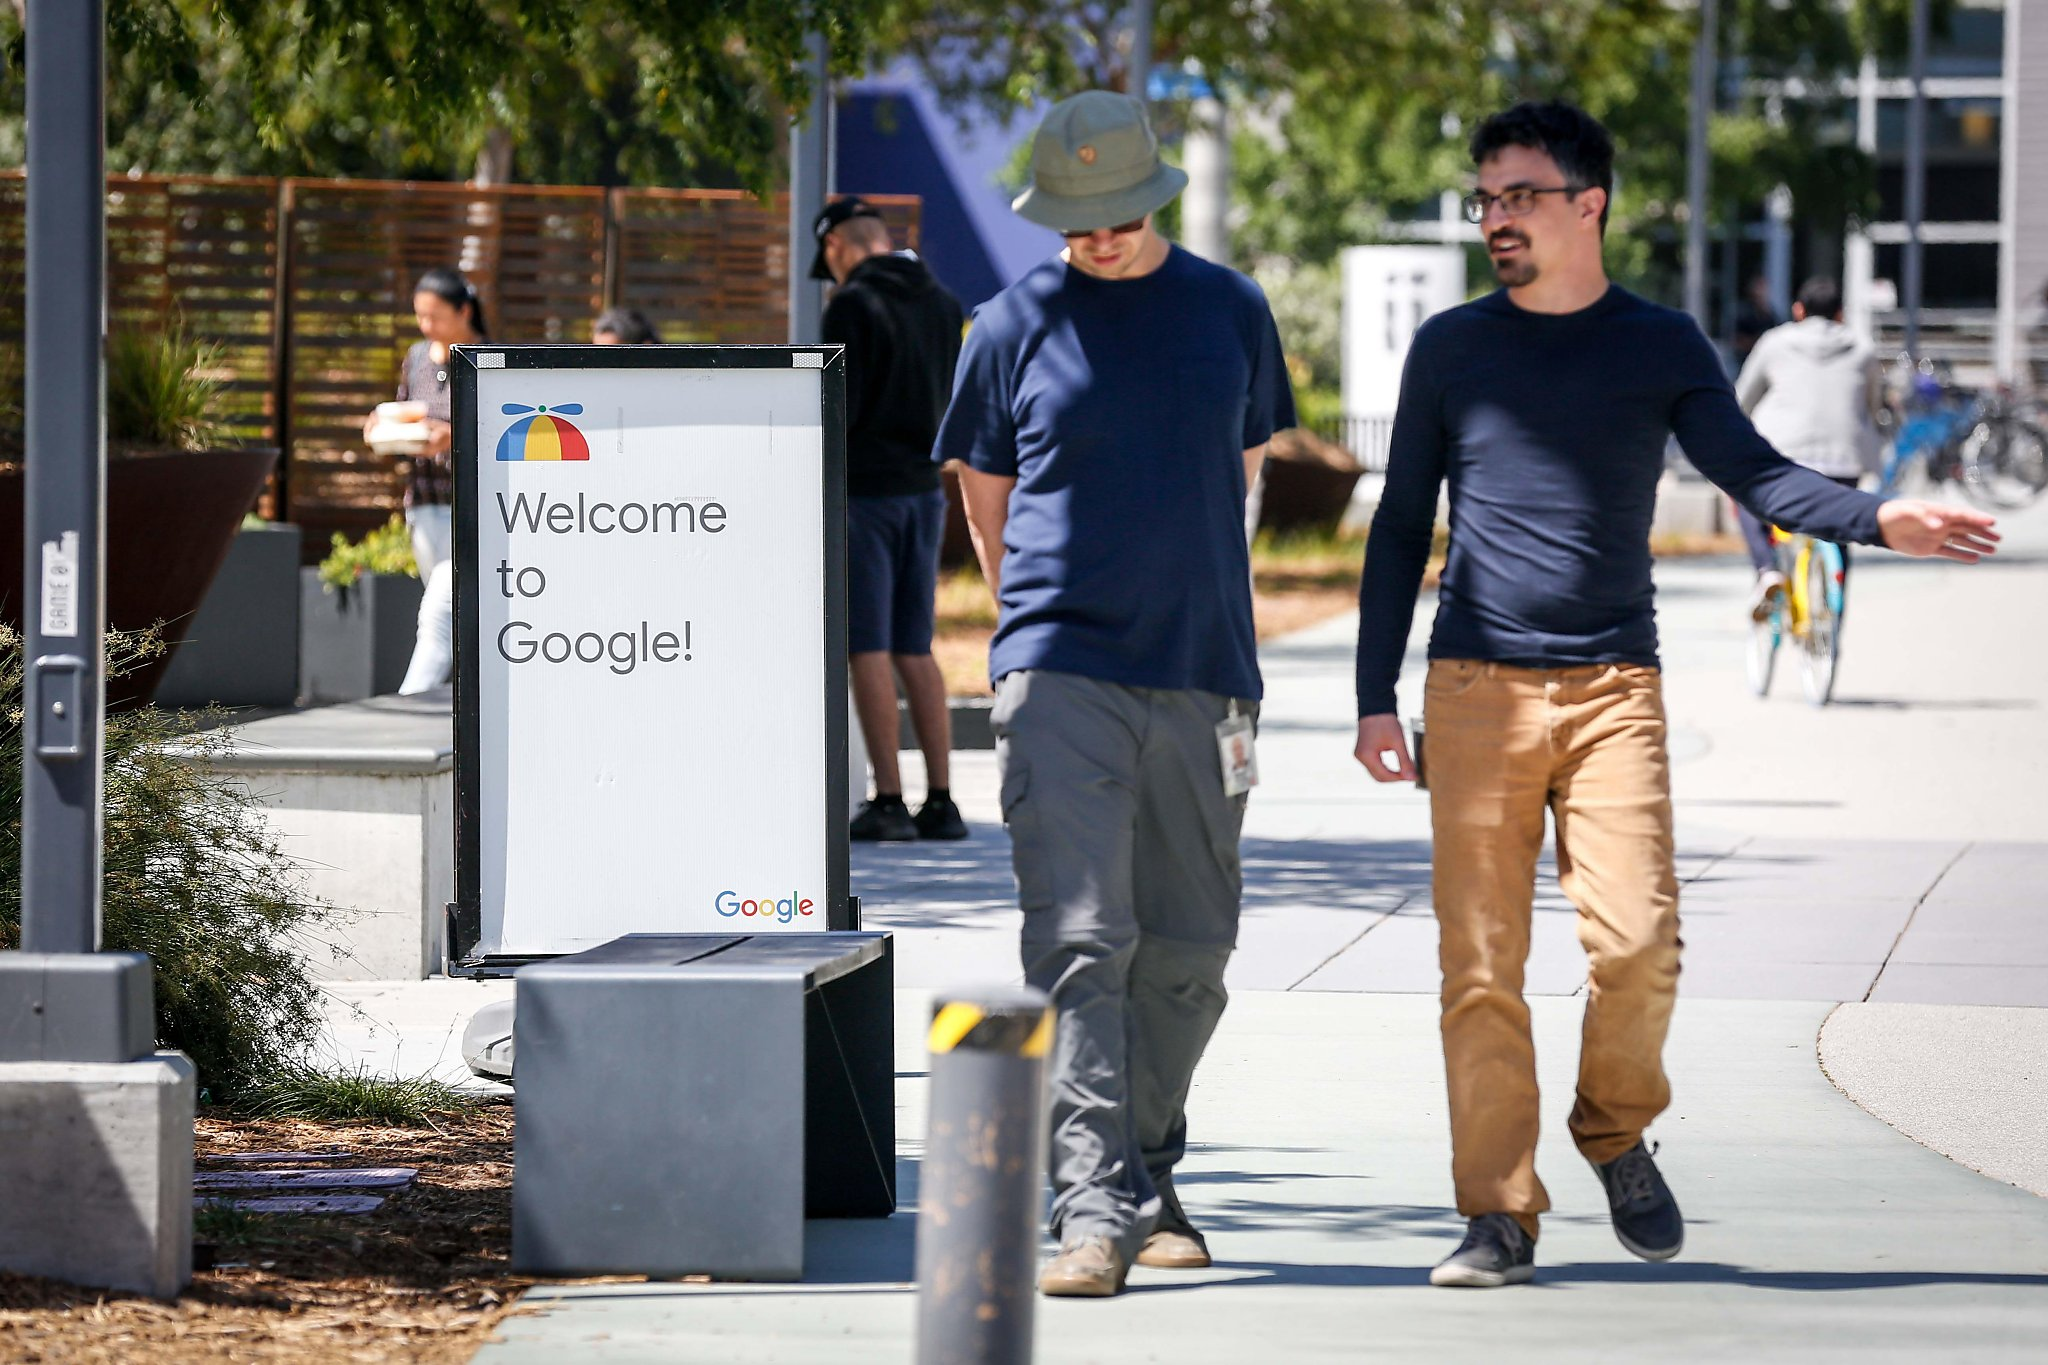 www.sfchronicle.com: Nascent union for U.S. Google workers caught by surprise by international expansion